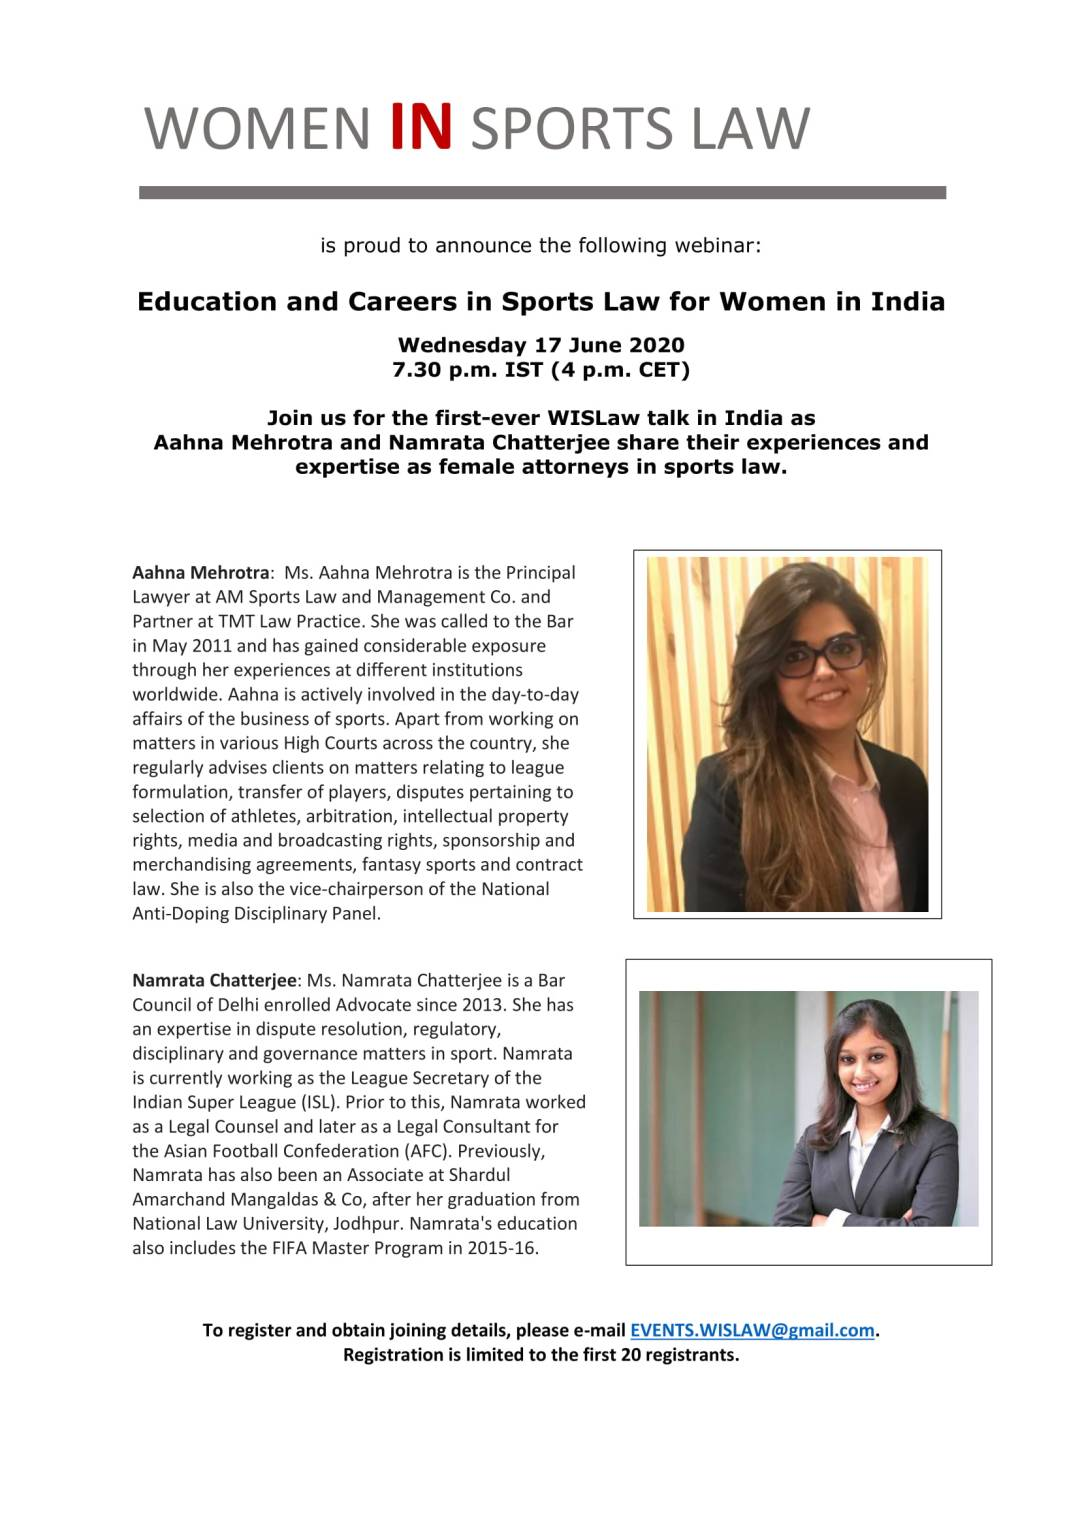 Education and Careers in Sports Law for Women in India - 17 June 2020